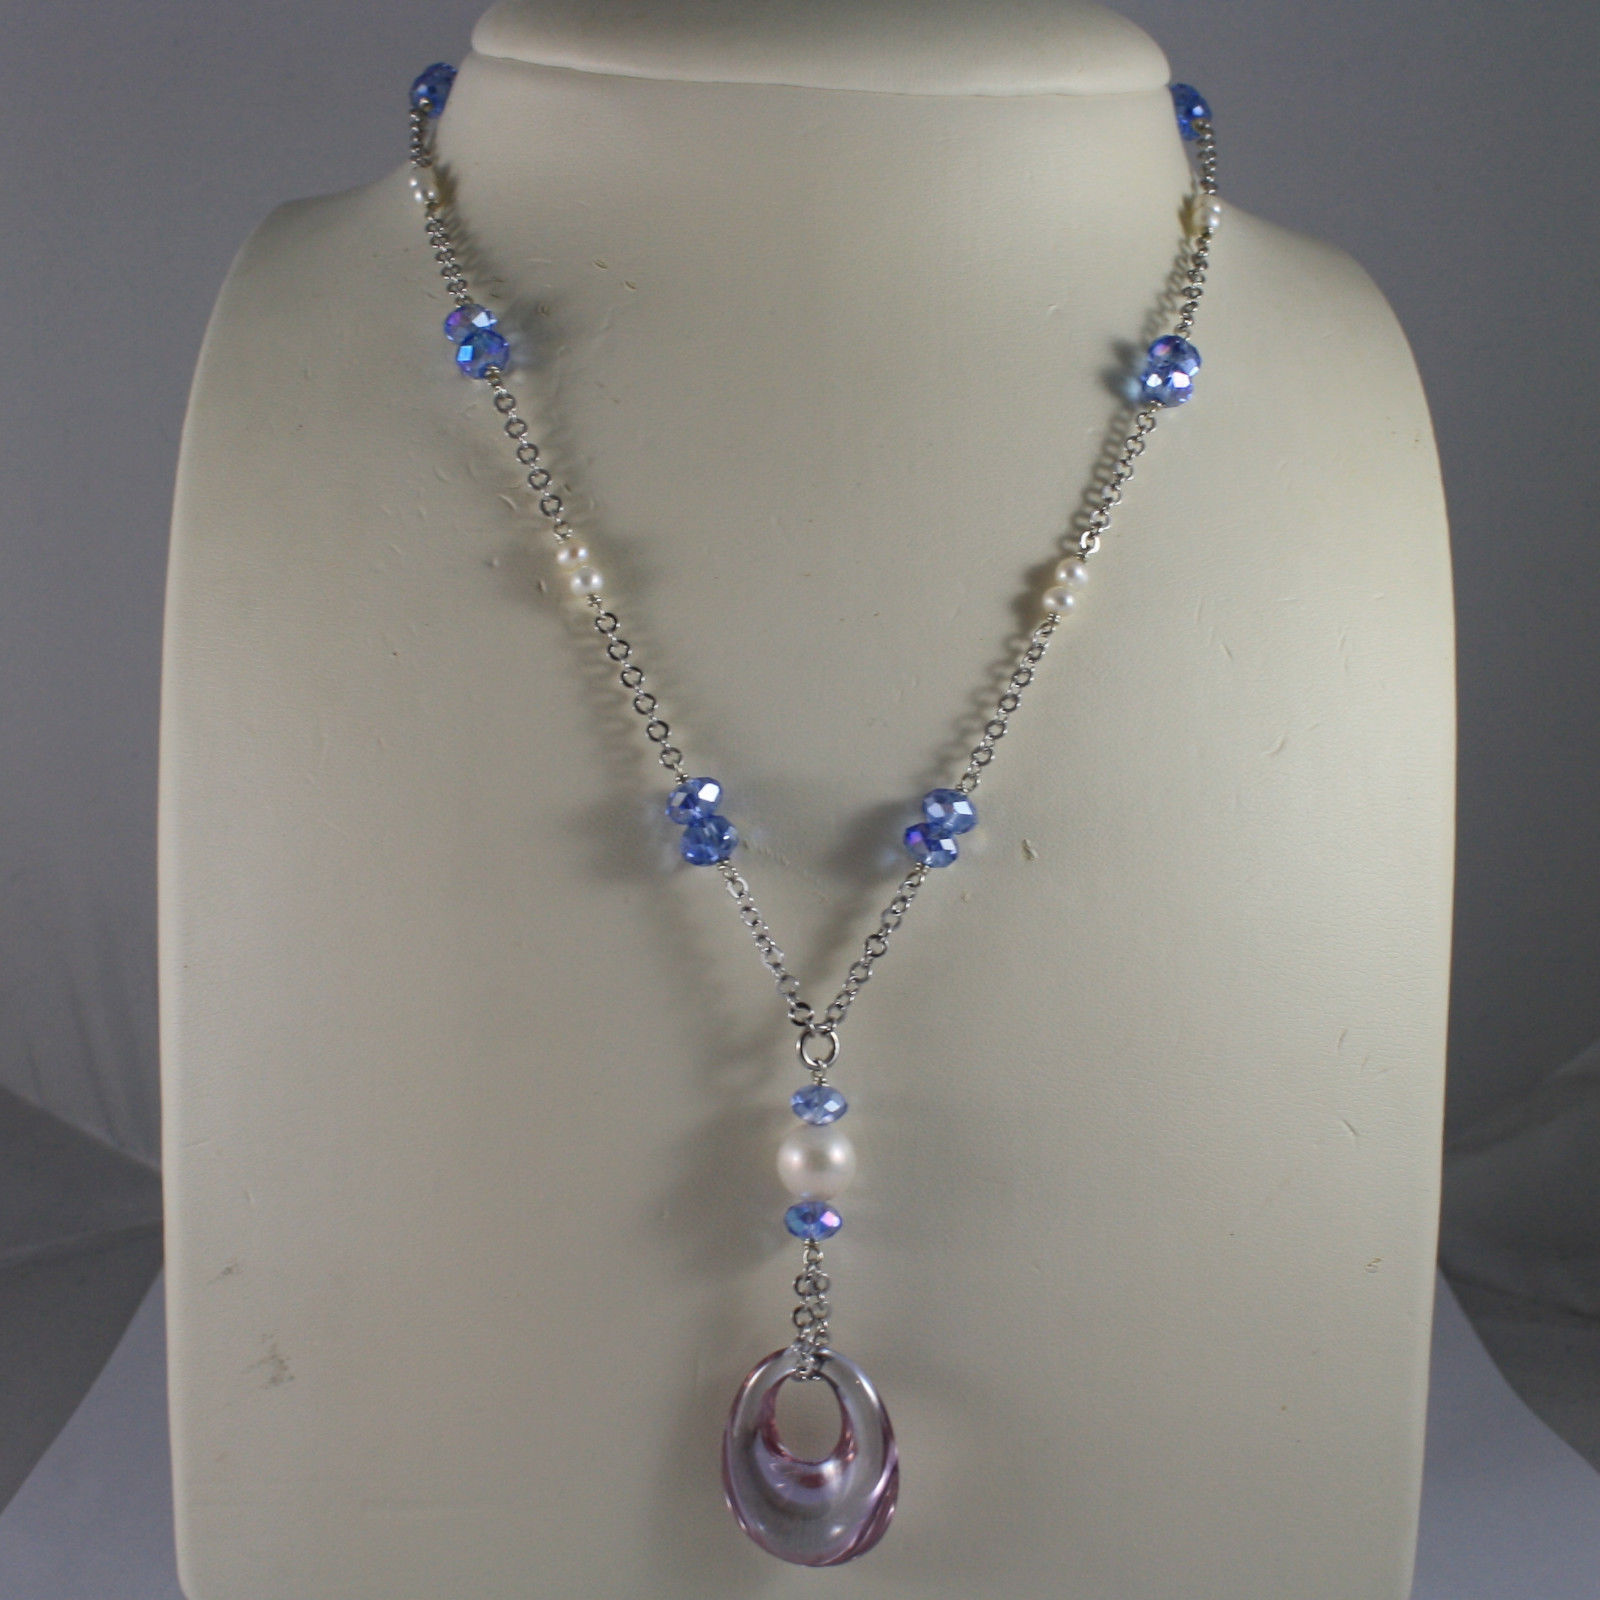 .925 SILVER RHODIUM NECKLACE WITH BLUE CRYSTALS, WHITE PEARLS AND DROP OF ZIRCON